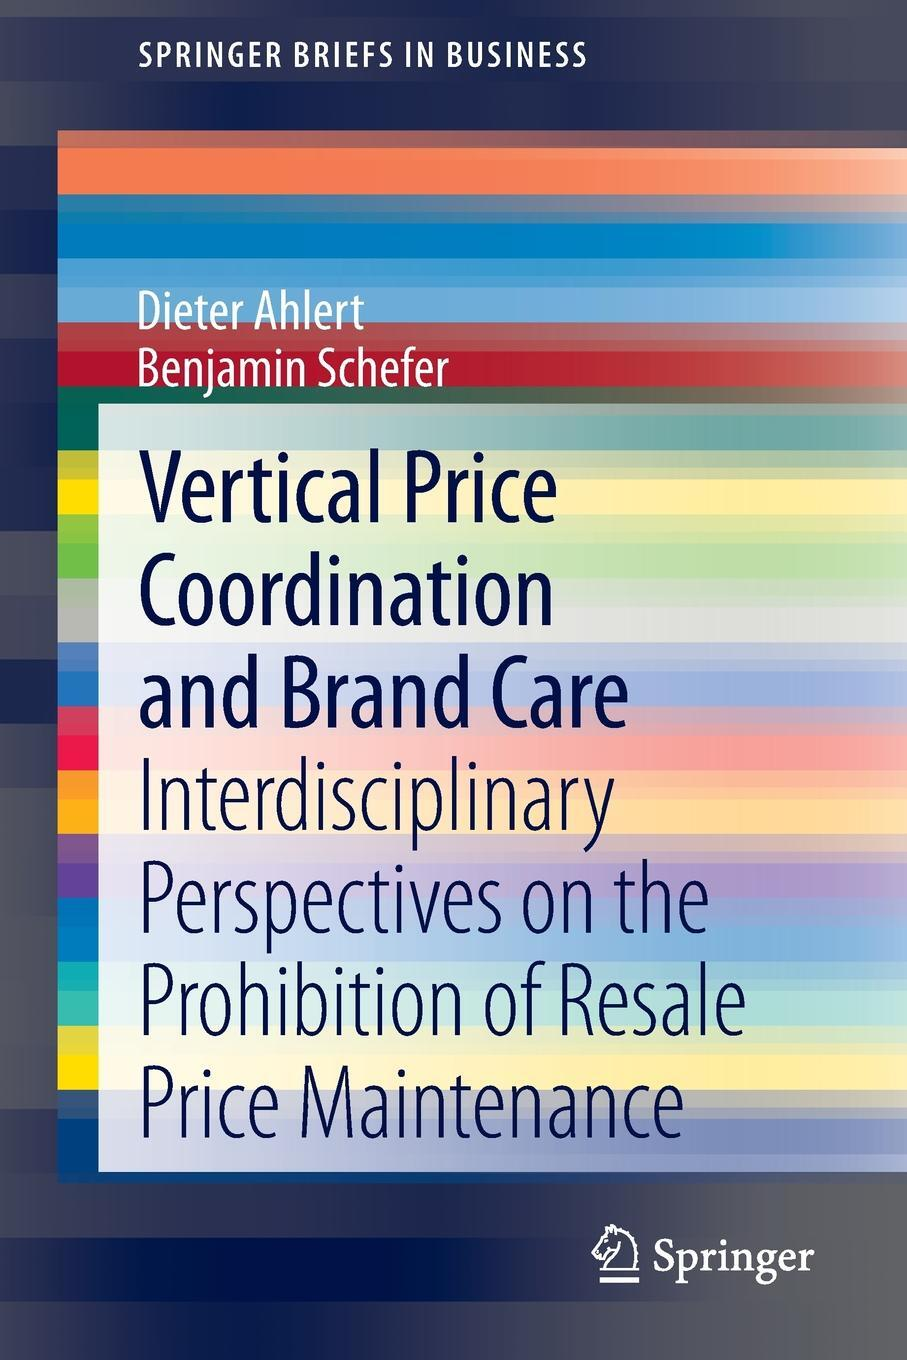 Vertical Price Coordination and Brand Care. Interdisciplinary Perspectives on the Prohibition of Resale Price Maintenance. Dieter Ahlert, Benjamin Schefer